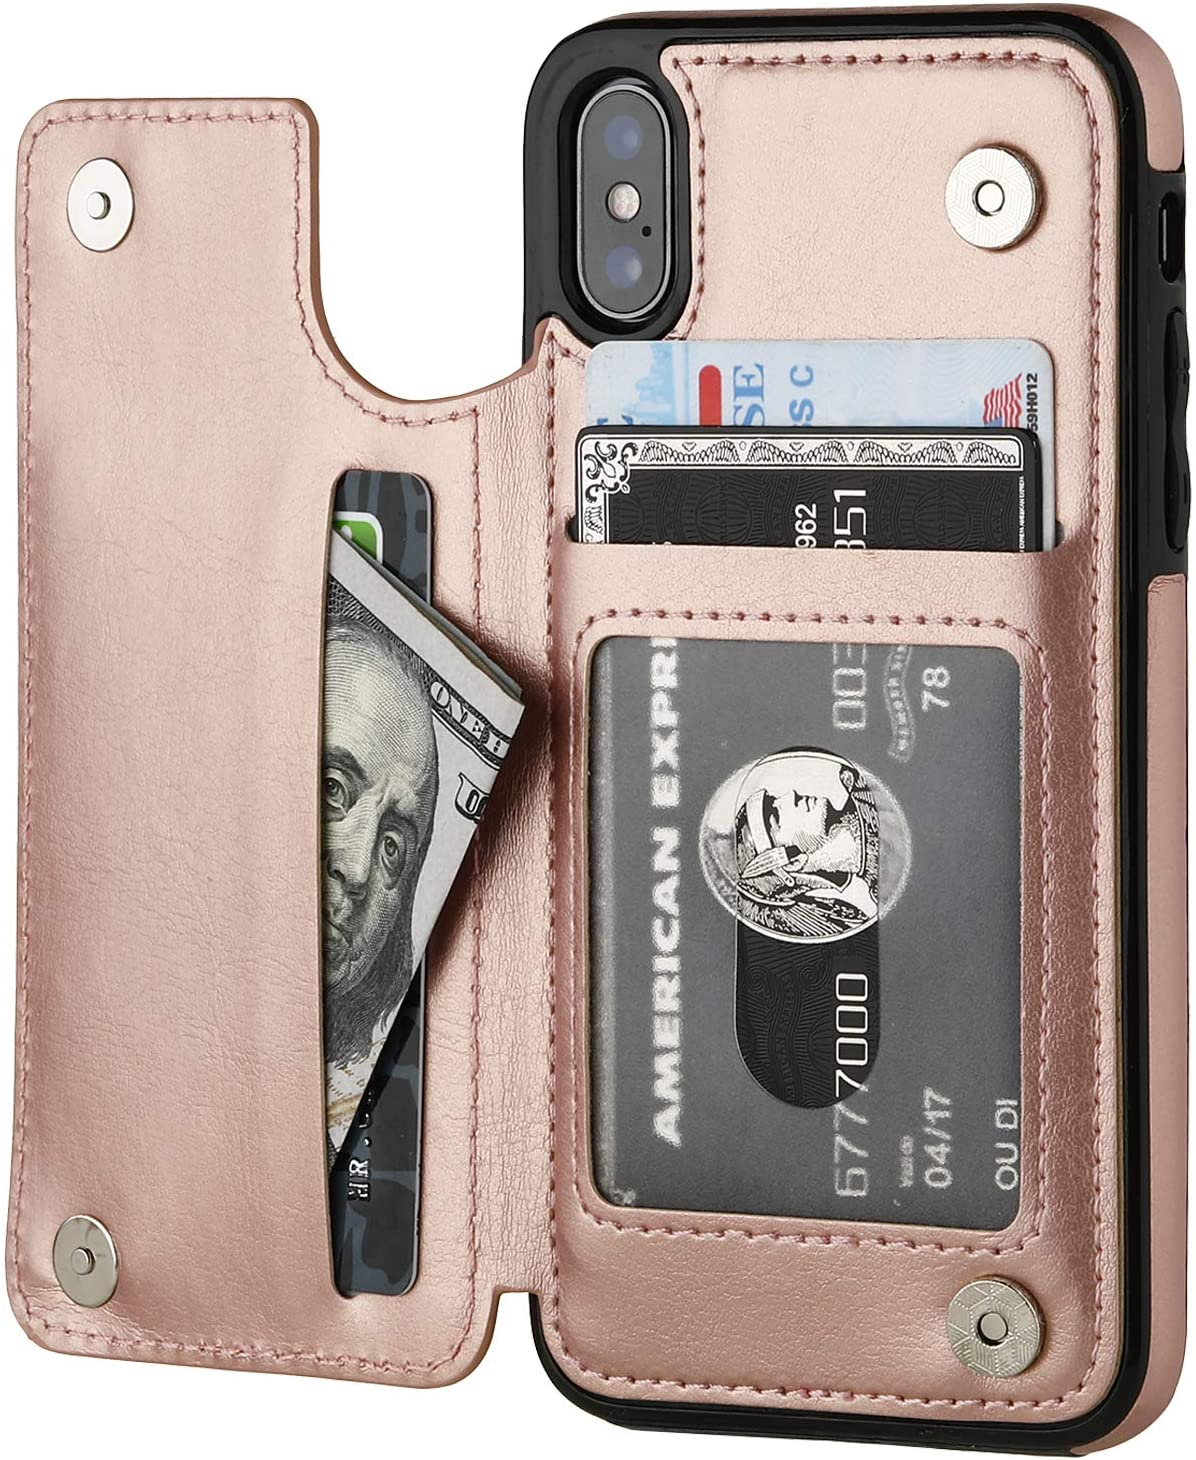 iPhone Xs iPhone X Wallet Case with Card Holder,OT ONETOP Premium PU Leather Kickstand Card Slots Case,Double Magnetic Clasp and Durable Shockproof Cover (iPhone X 5.8